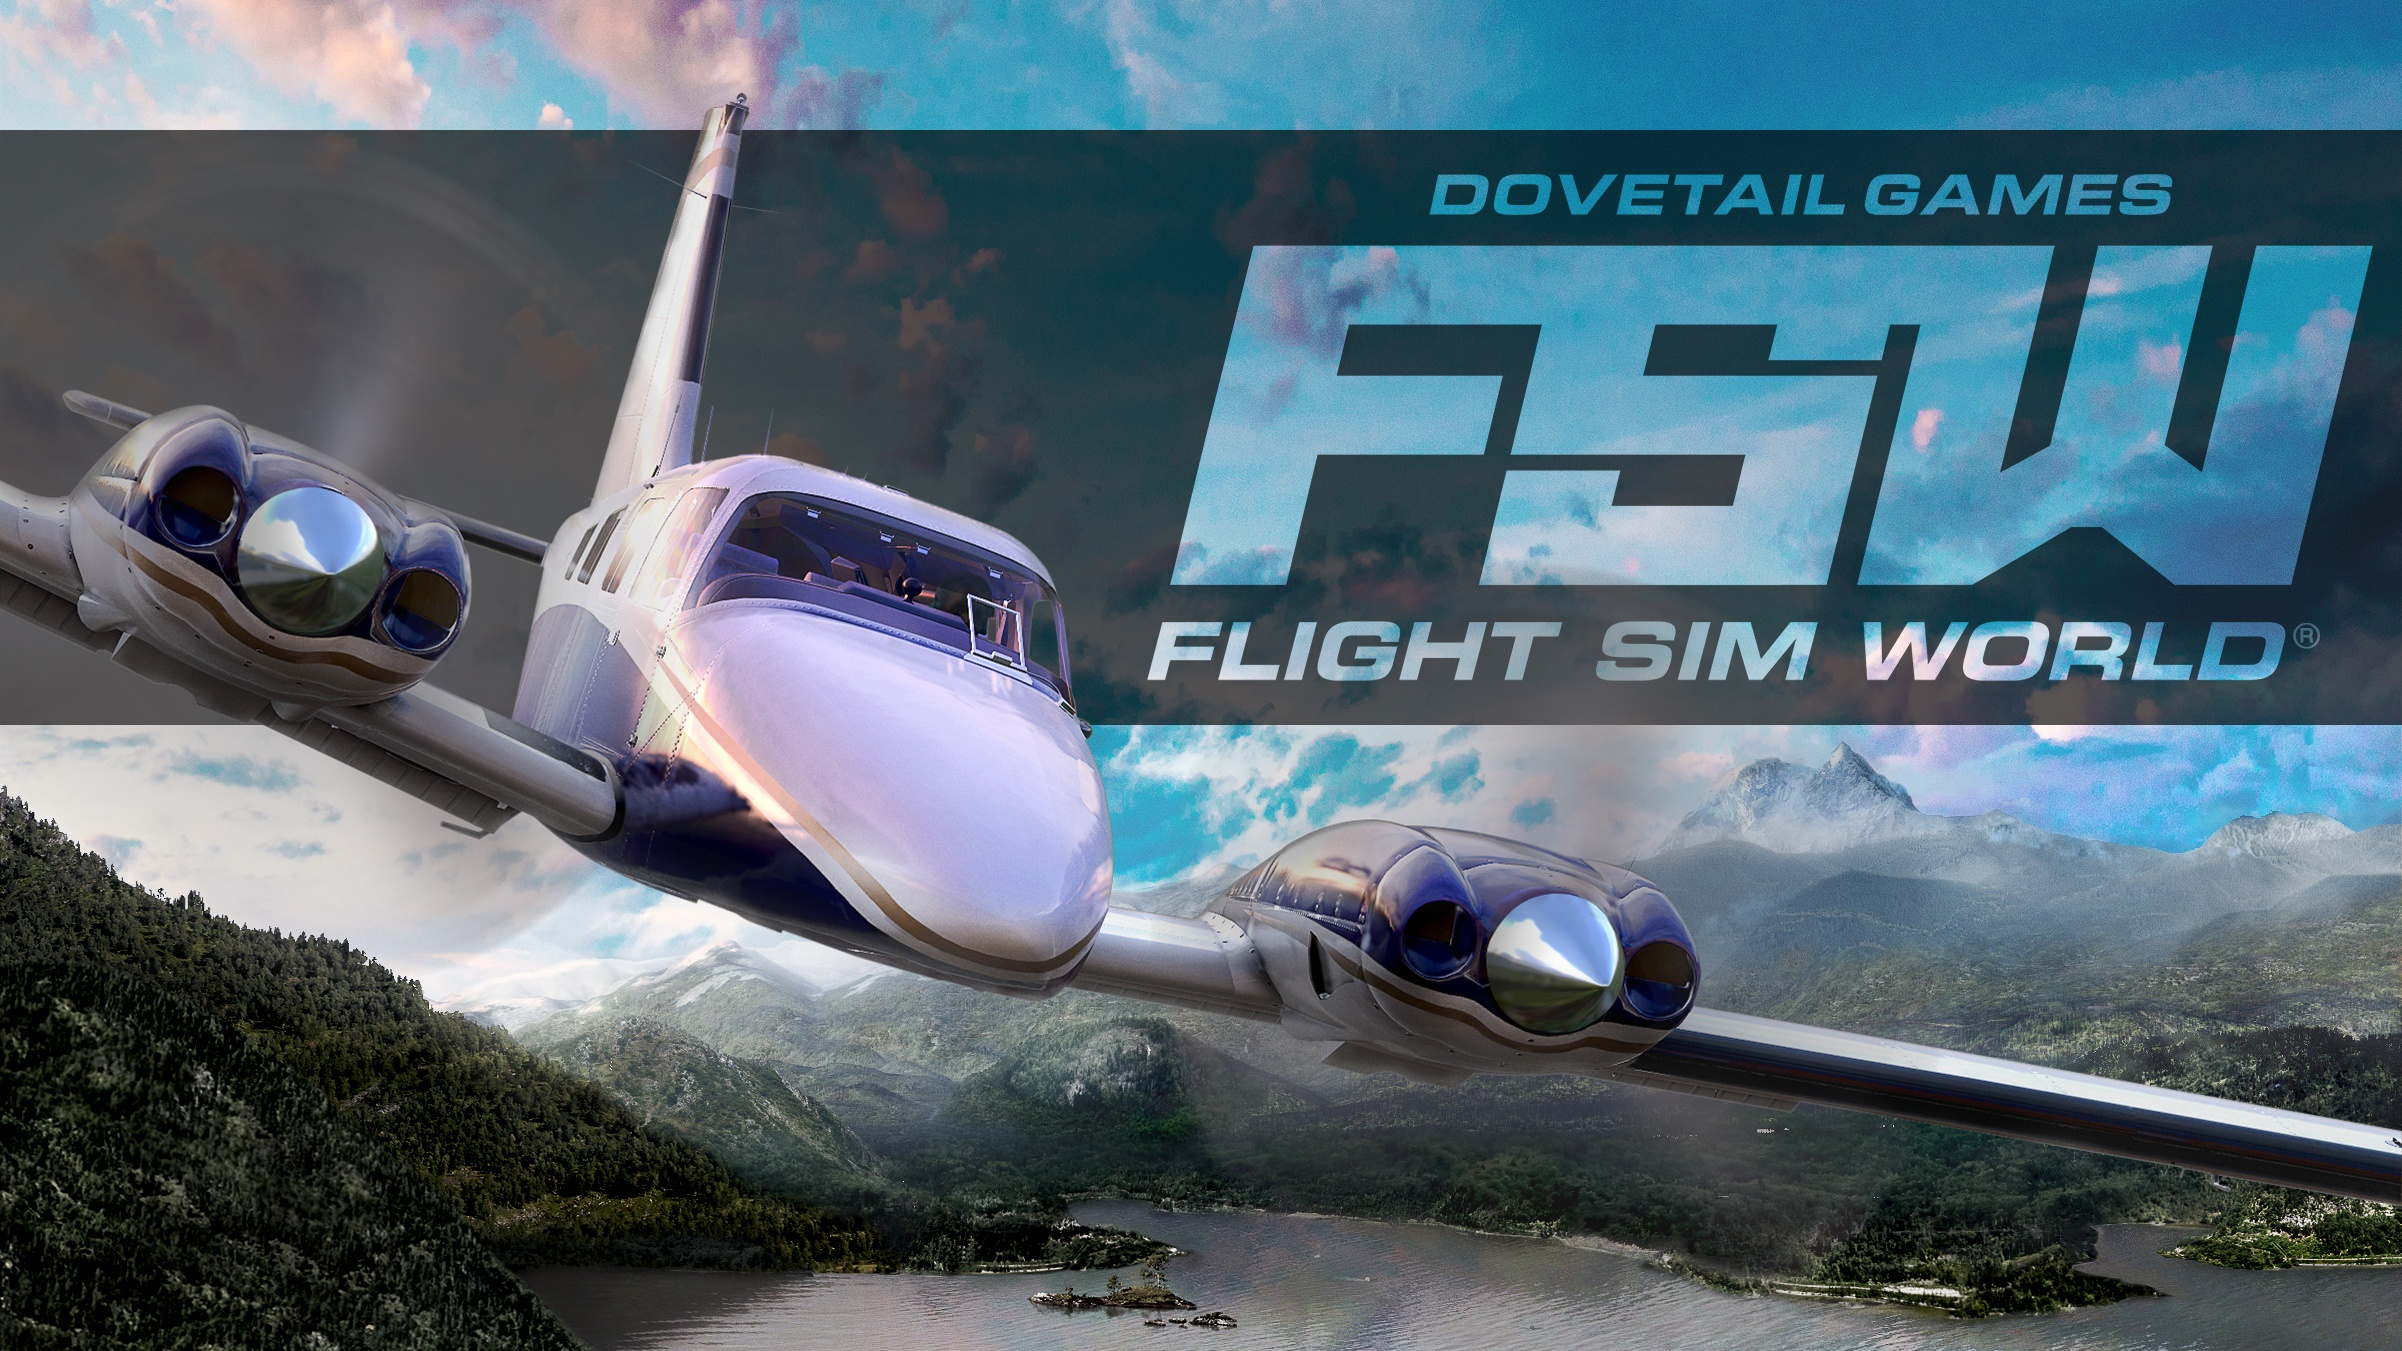 Download DCS World (v2.5.5.41371 Stable + All Modules + Bonus Modules, MULTi7) [FitGirl Repack]